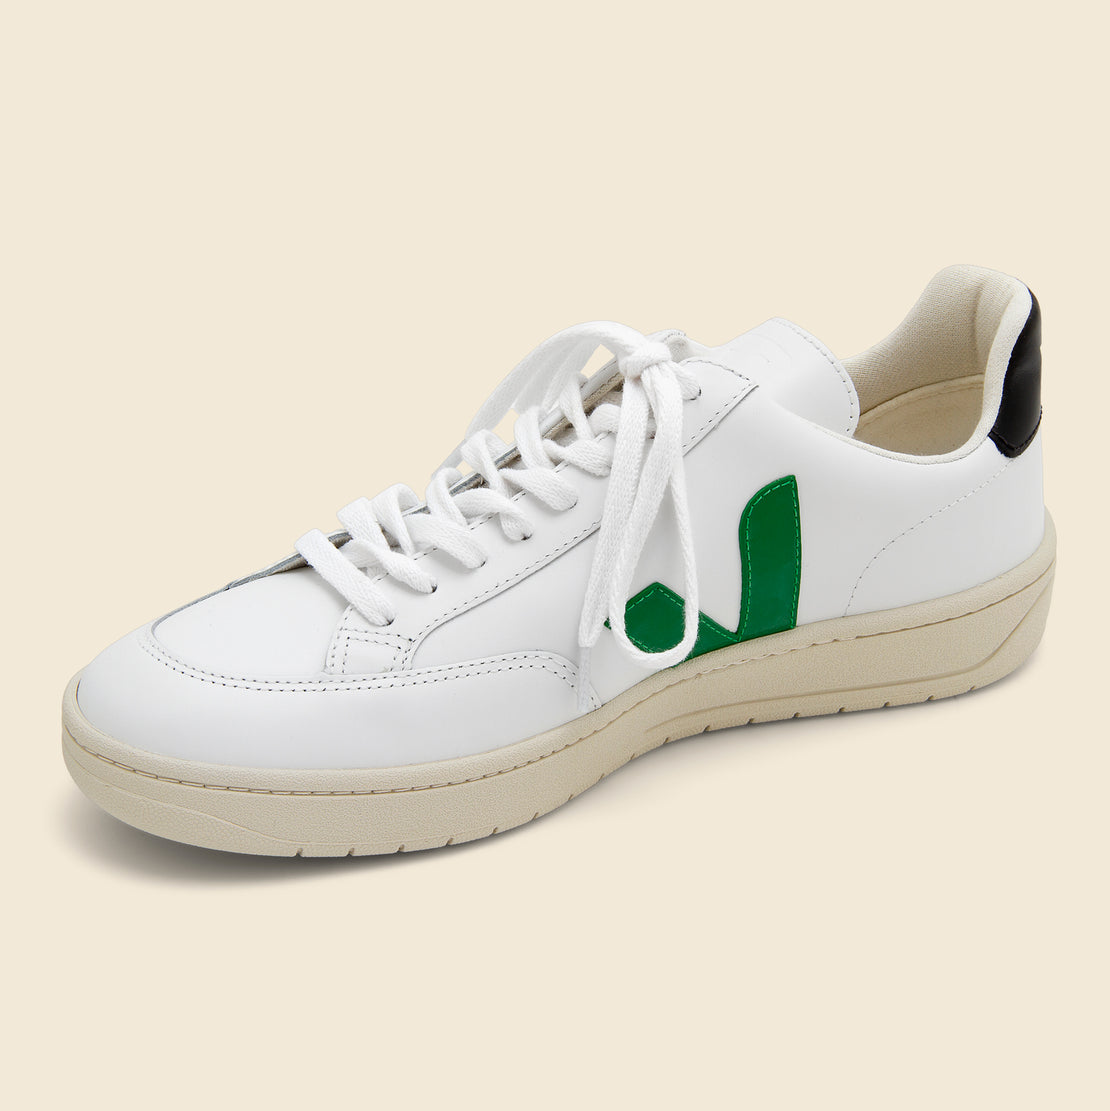 V-12 Leather Sneaker - Extra White/Emeraude Black